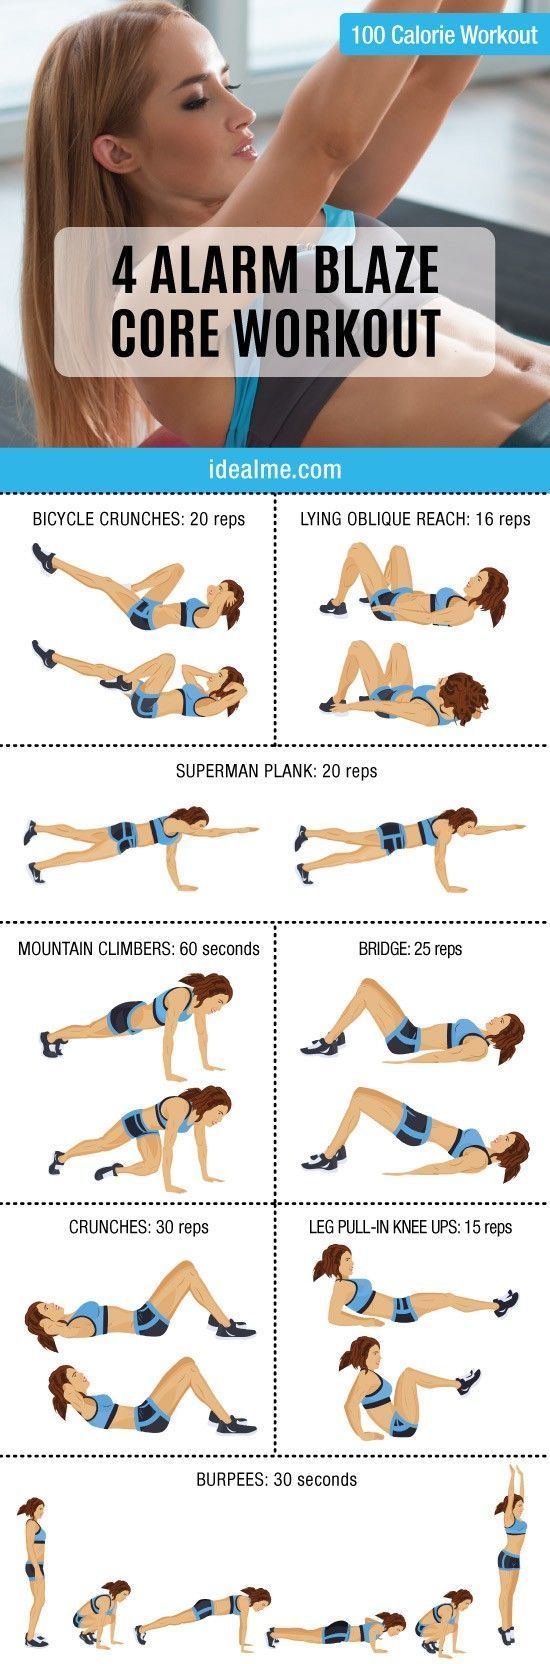 Best 25 get abs ideas on pinterest how to get abs for Floor exercises for abs